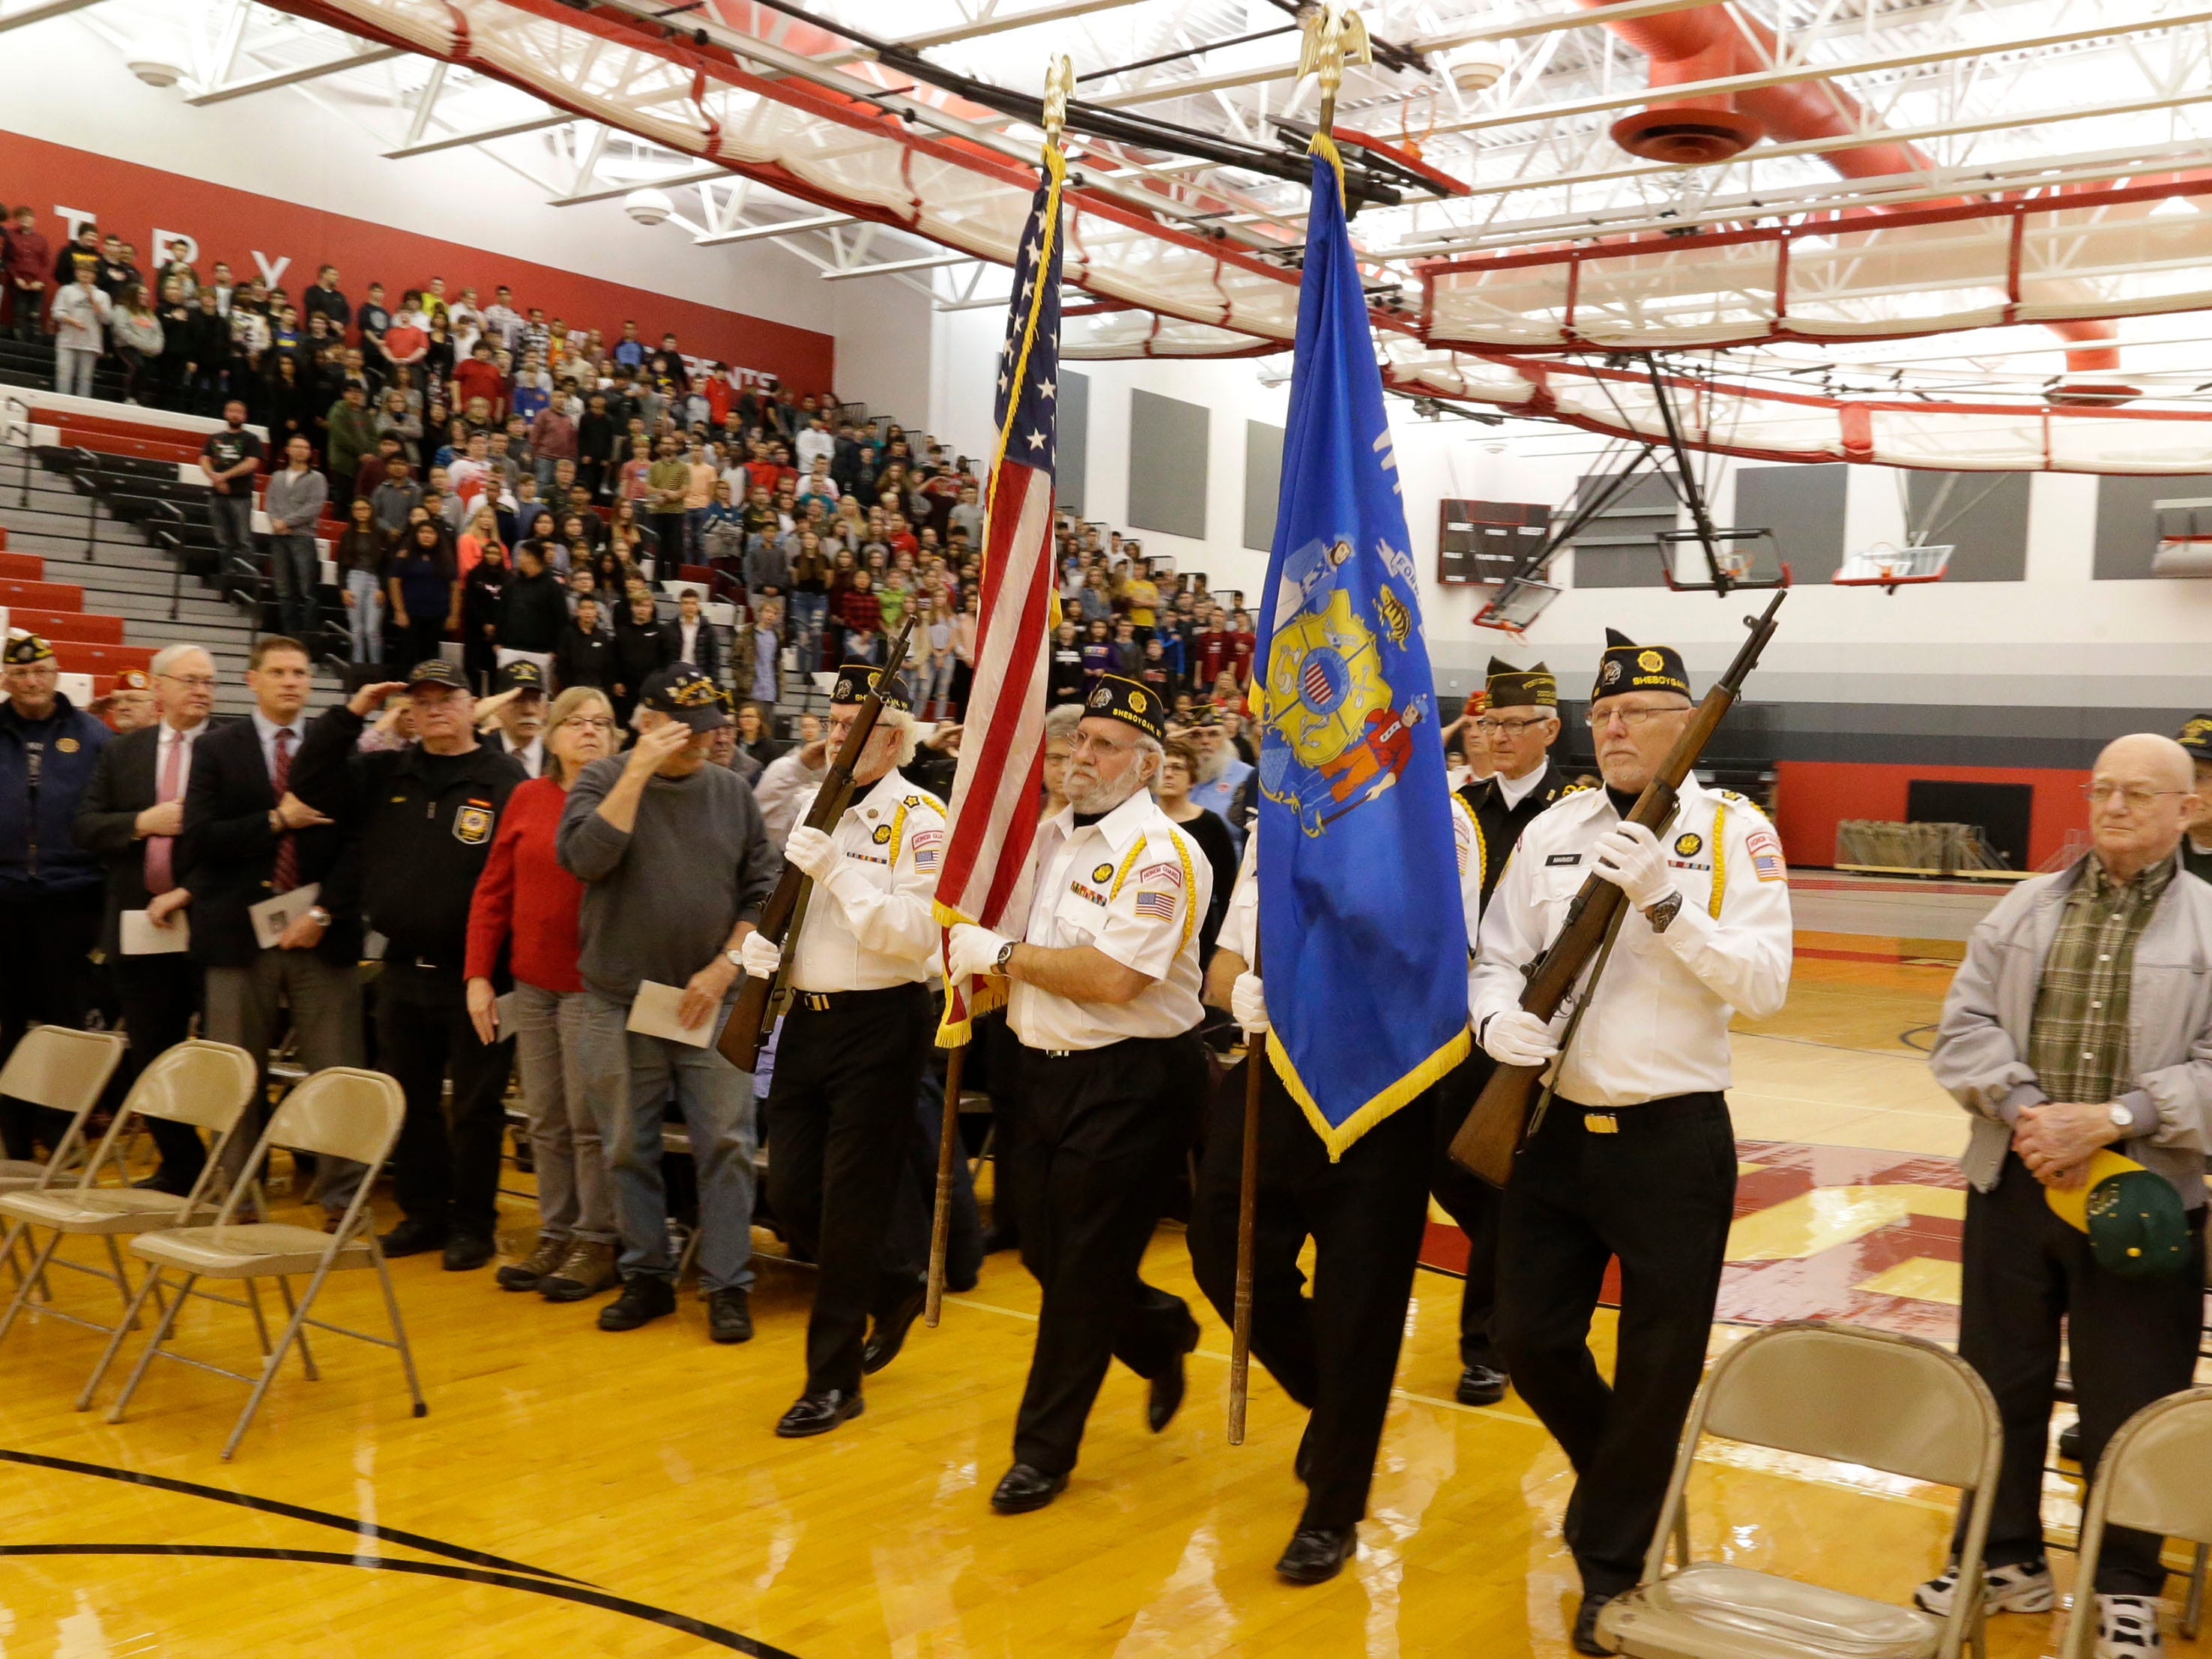 Members of Sheboygan Memorial Post 9156 carry the colors during the Veterans Day Program at Sheboygan South High School, Friday, November 9, 2018, in Sheboygan, Wis.